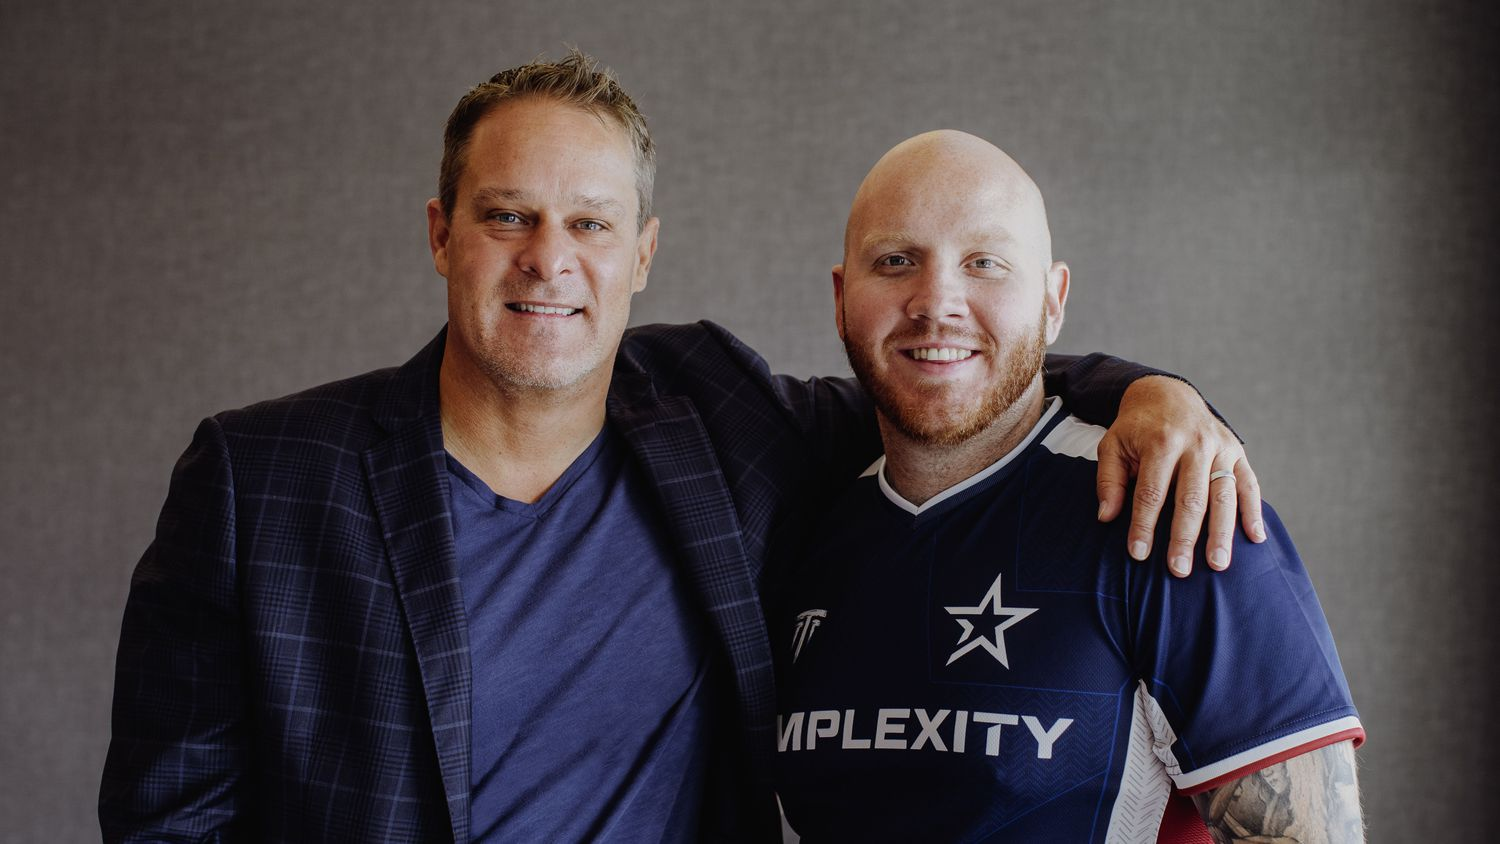 """Complexity Gaming owner Jason Lake (left) stands with Timothy """"TimTheTatMan"""" John Betar (right). TimTheTatMan, who has over 2.6 million Twitter followers as a gaming content creator, announced he was joining Complexity Monday afternoon."""